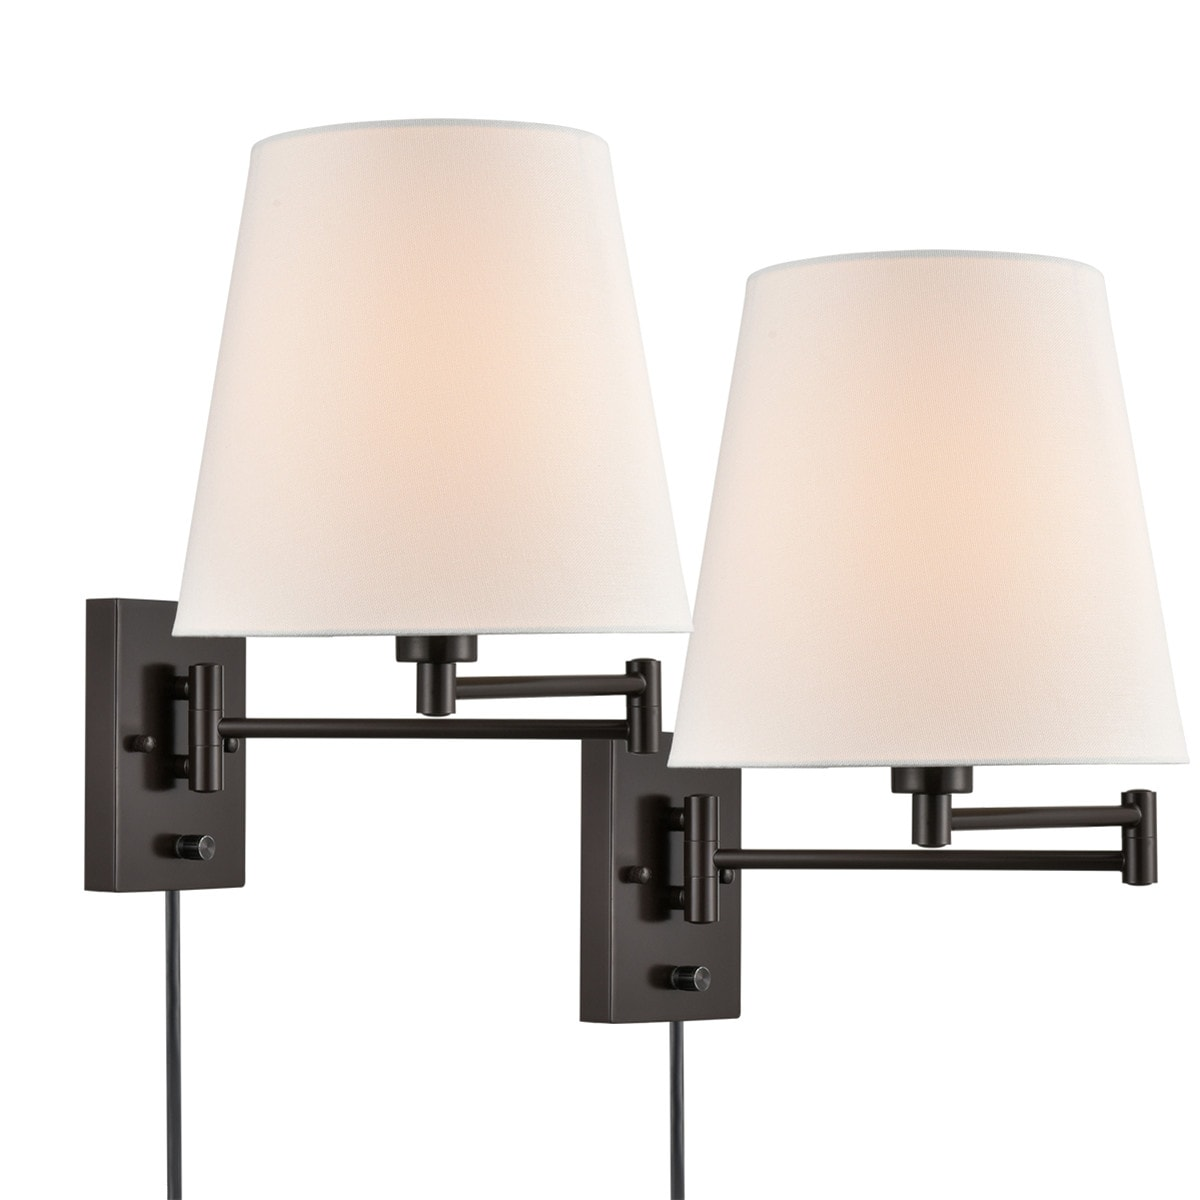 Modern Fabric Plug-In Wall Sconce with Switch Set of 2